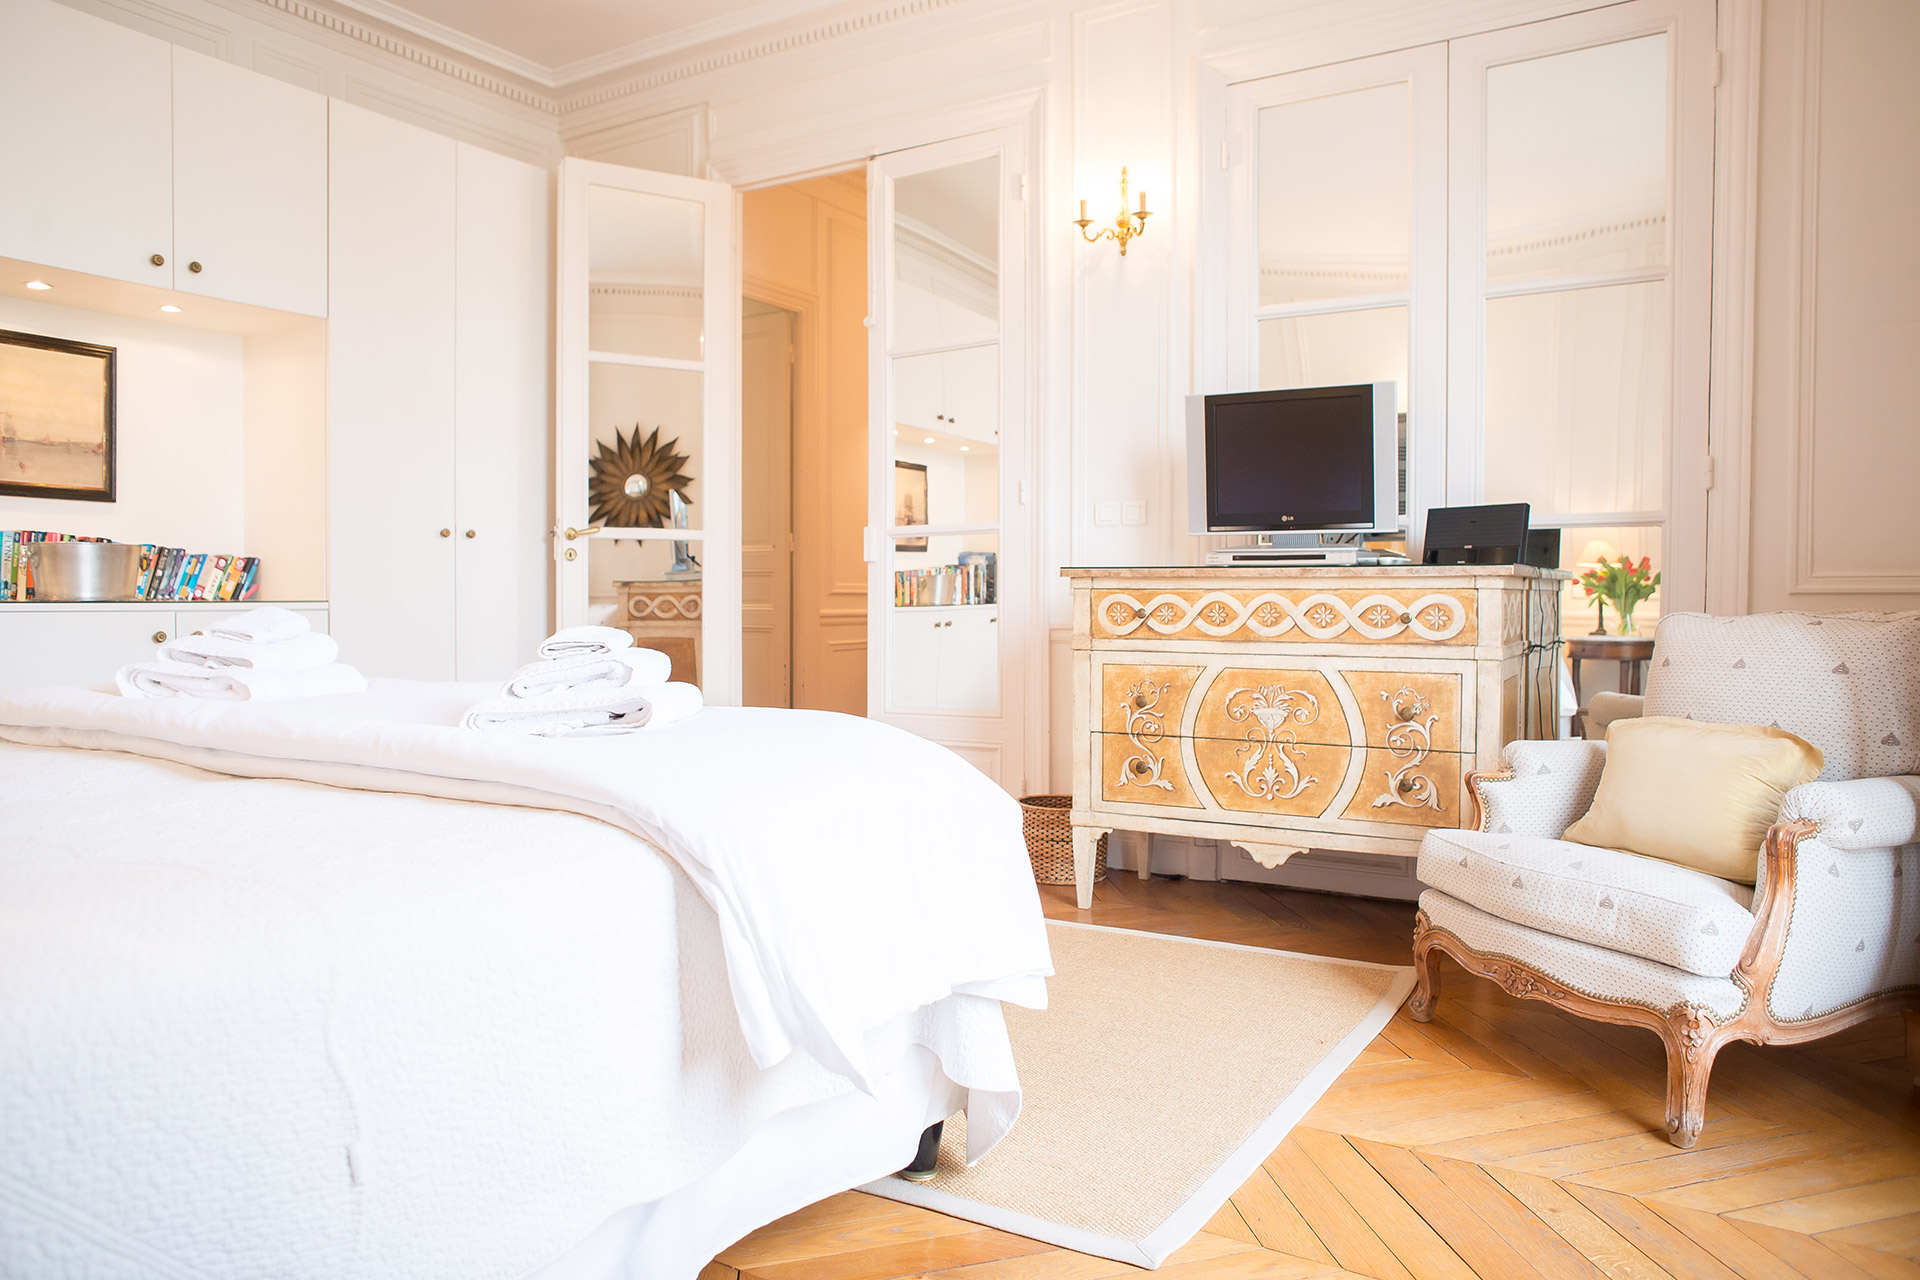 Oversized French door brightens the first bedroom of the Chateauneuf vacation rental offered by Paris Perfect